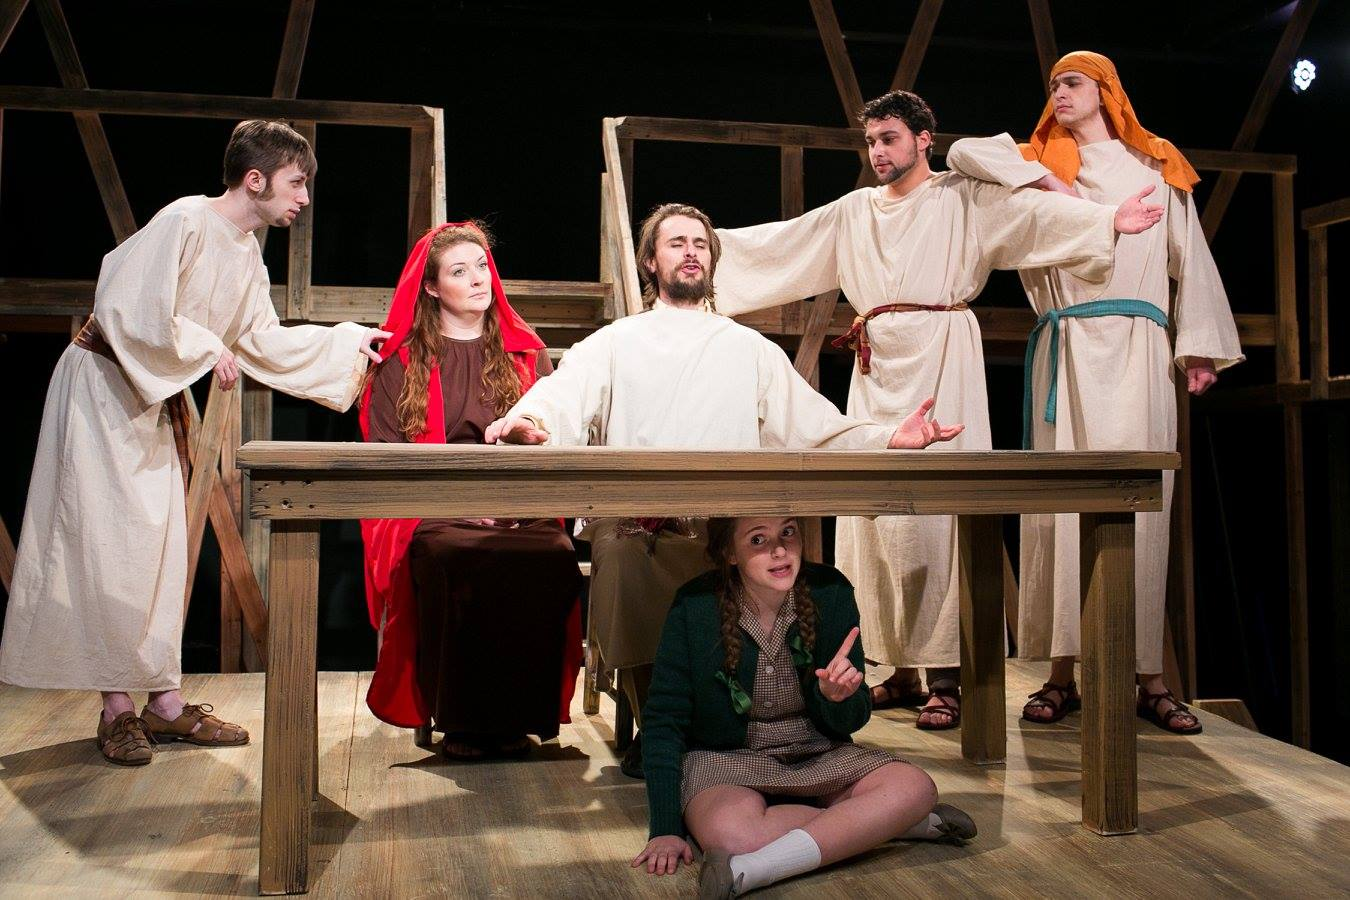 Eric as Jesus with Violet, Mary 2 (Mary Magdalene) and ensemble from Act 2 of Sarah Ruhl's Passion Play costume design by Katharine Tarkulich